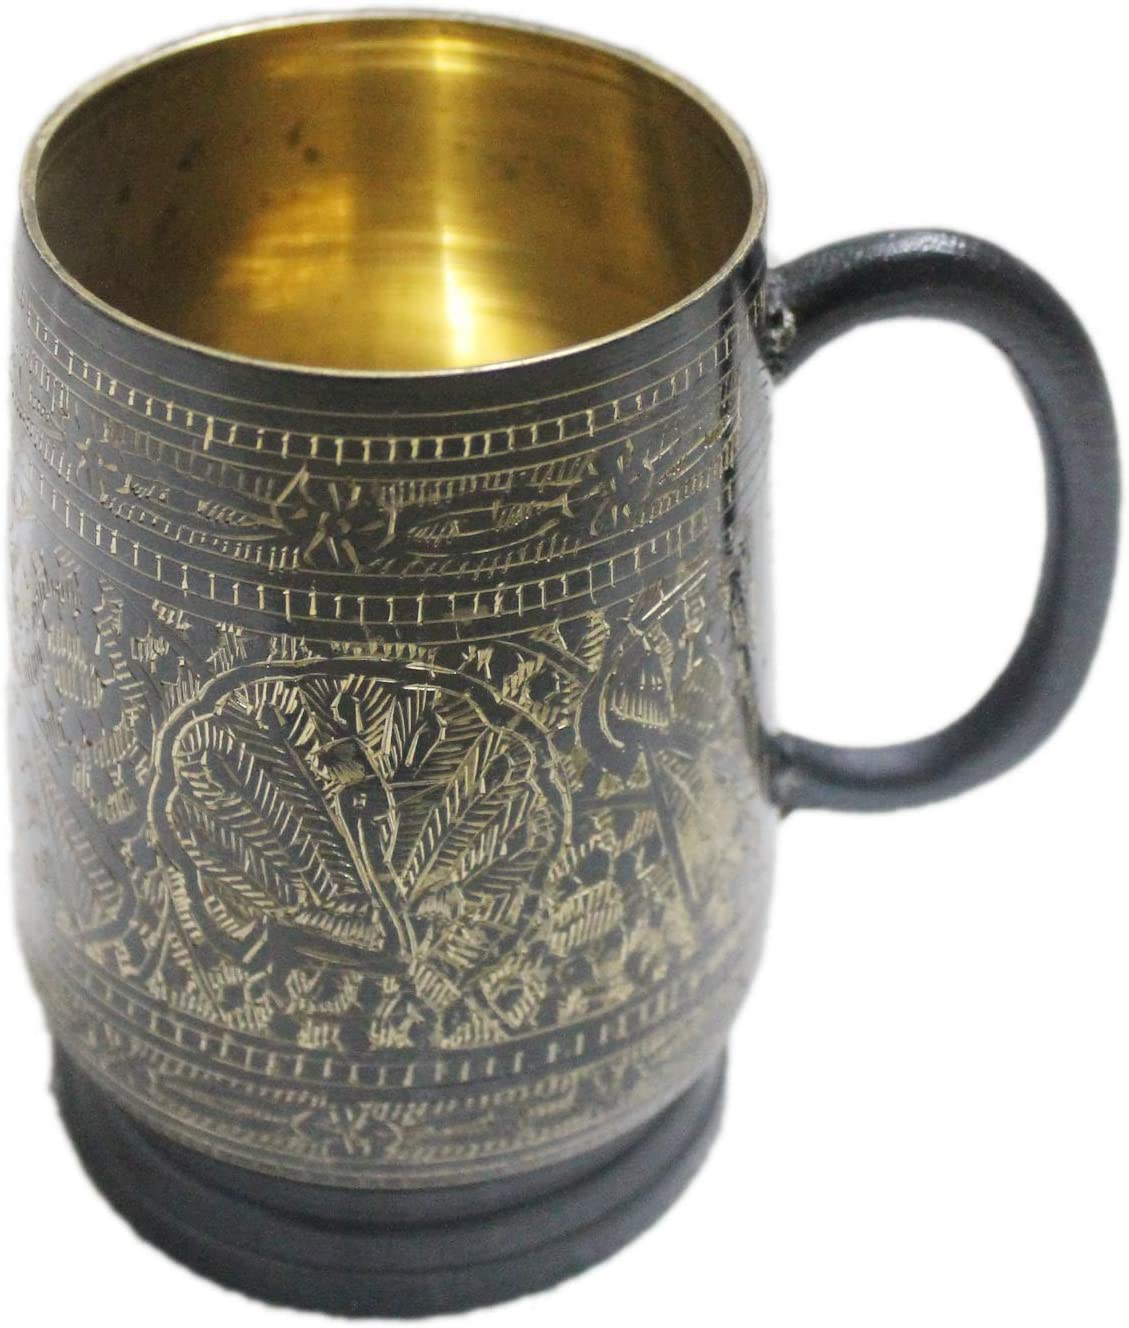 Unique tankard look handmade pure brass beer stein capacity 18 oz moscow mules mugs